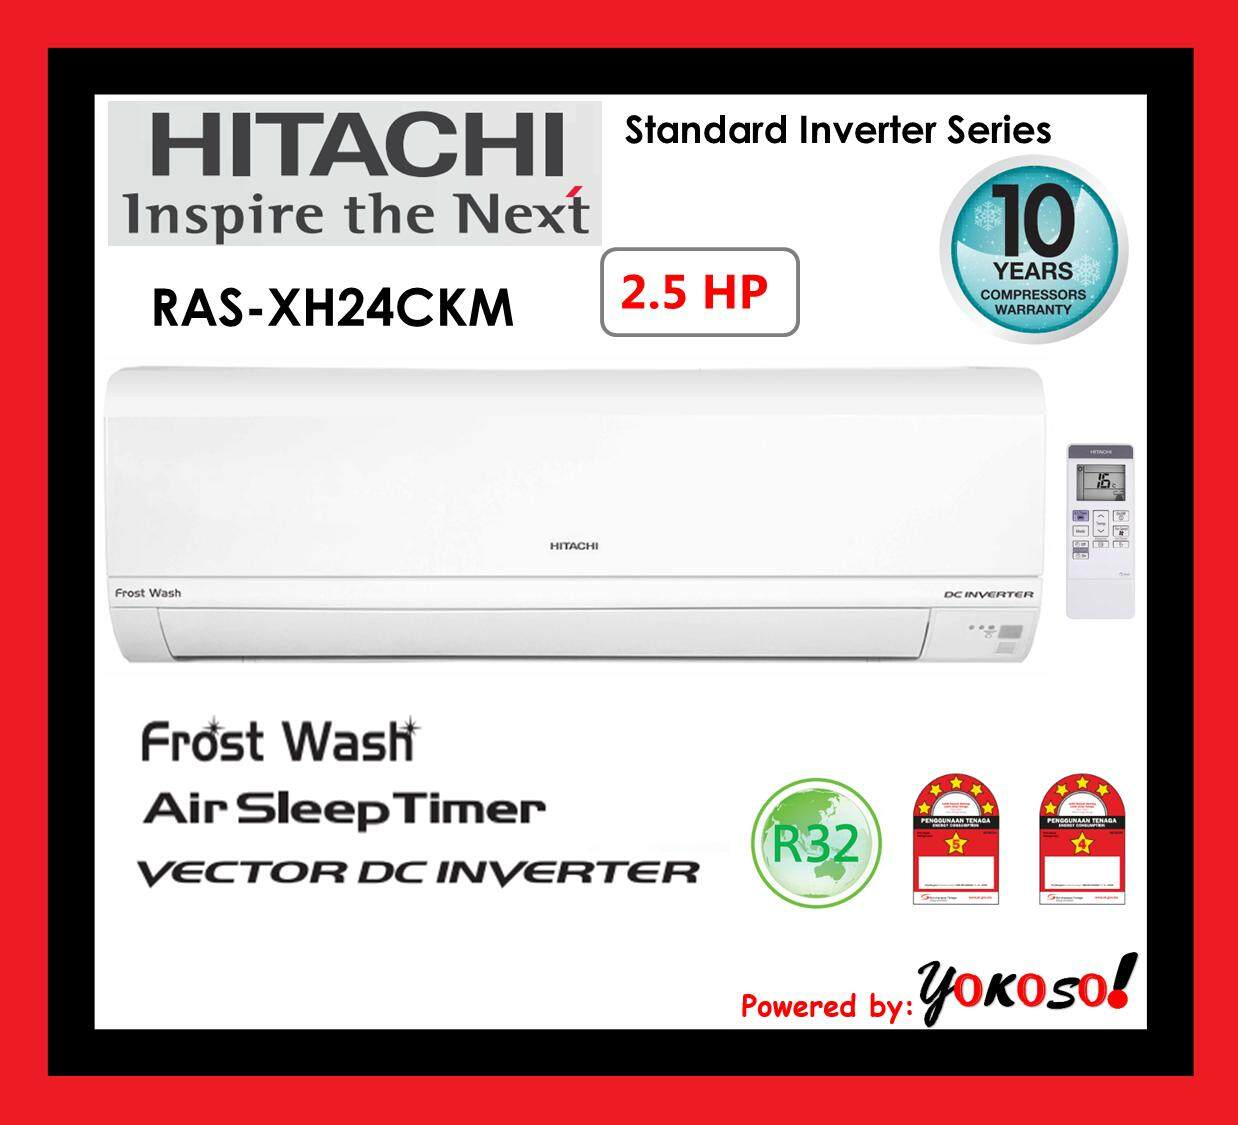 Hitachi RAS-XH24CKM 2.5HP Standard Inverter Series